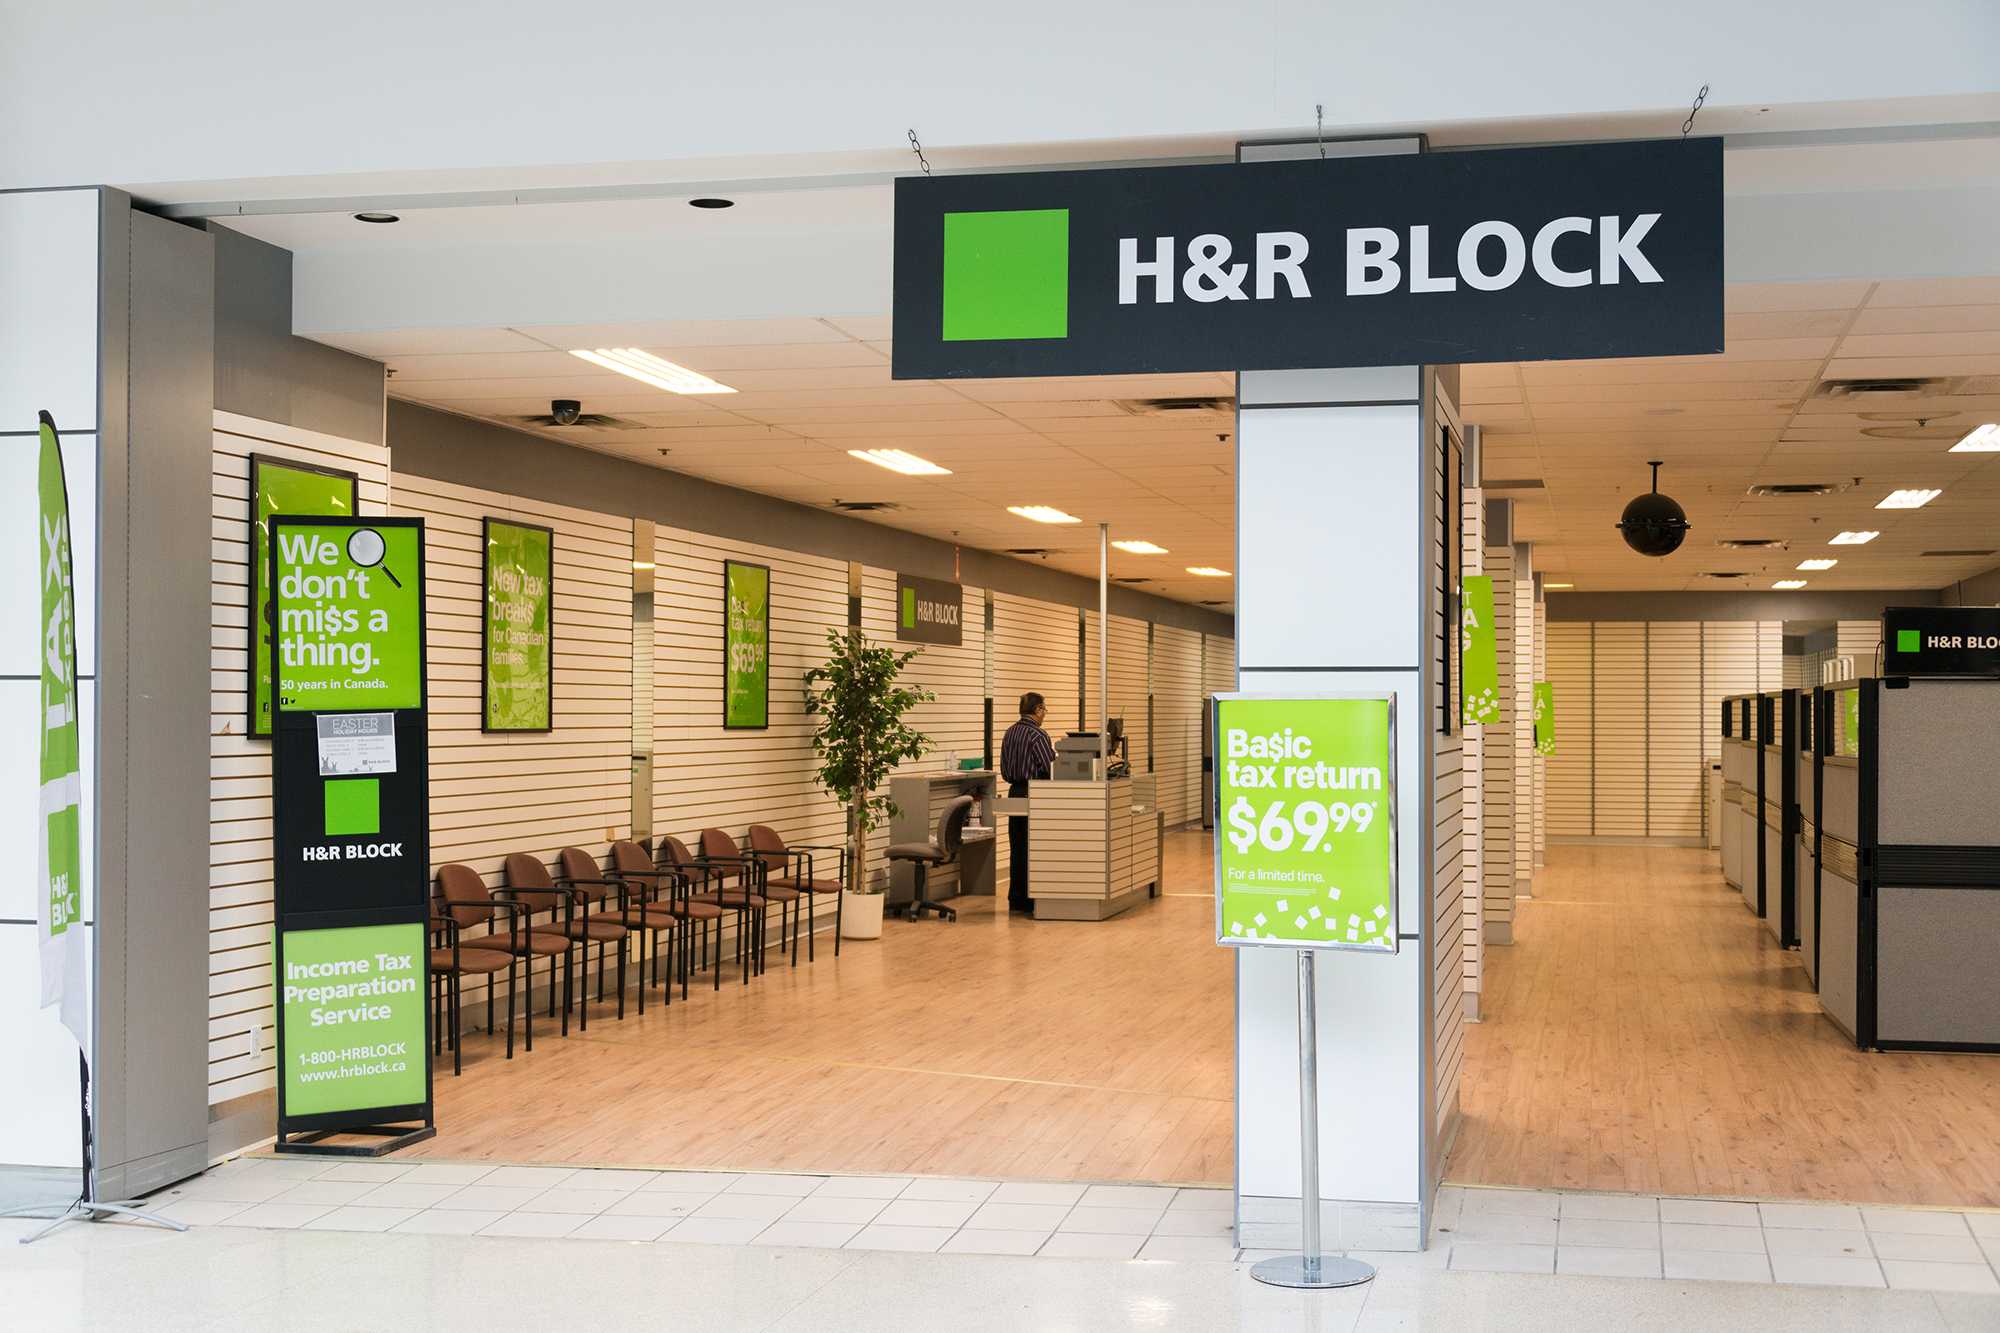 H&R Block, TurboTax blamed for delays in stimulus checks